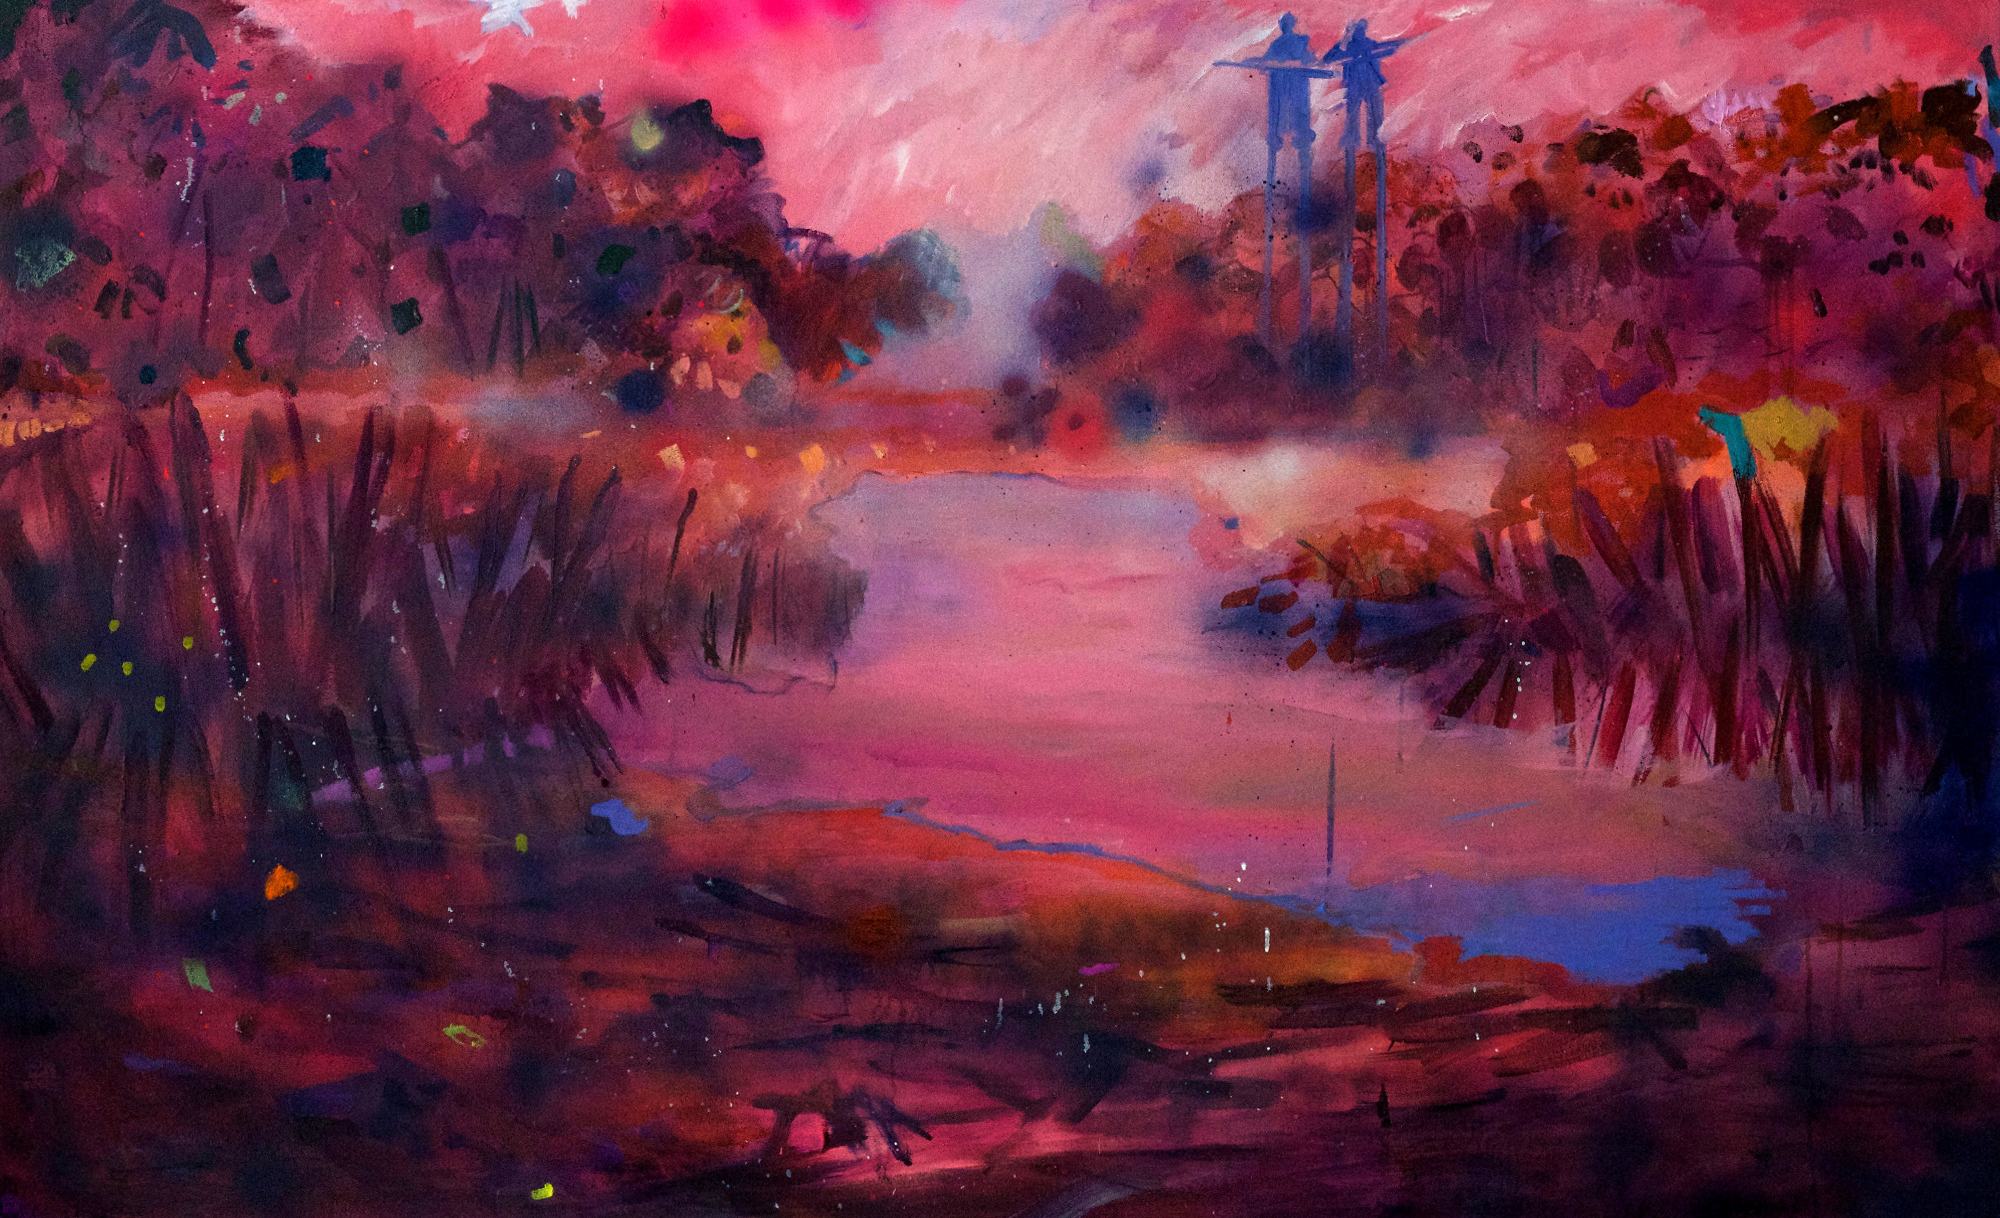 Kathryn Cowen,  Visit To Dunns Swamp , 2018-19, acrylic, aerosol and oil on canvas, 101.5 x 167.5cm